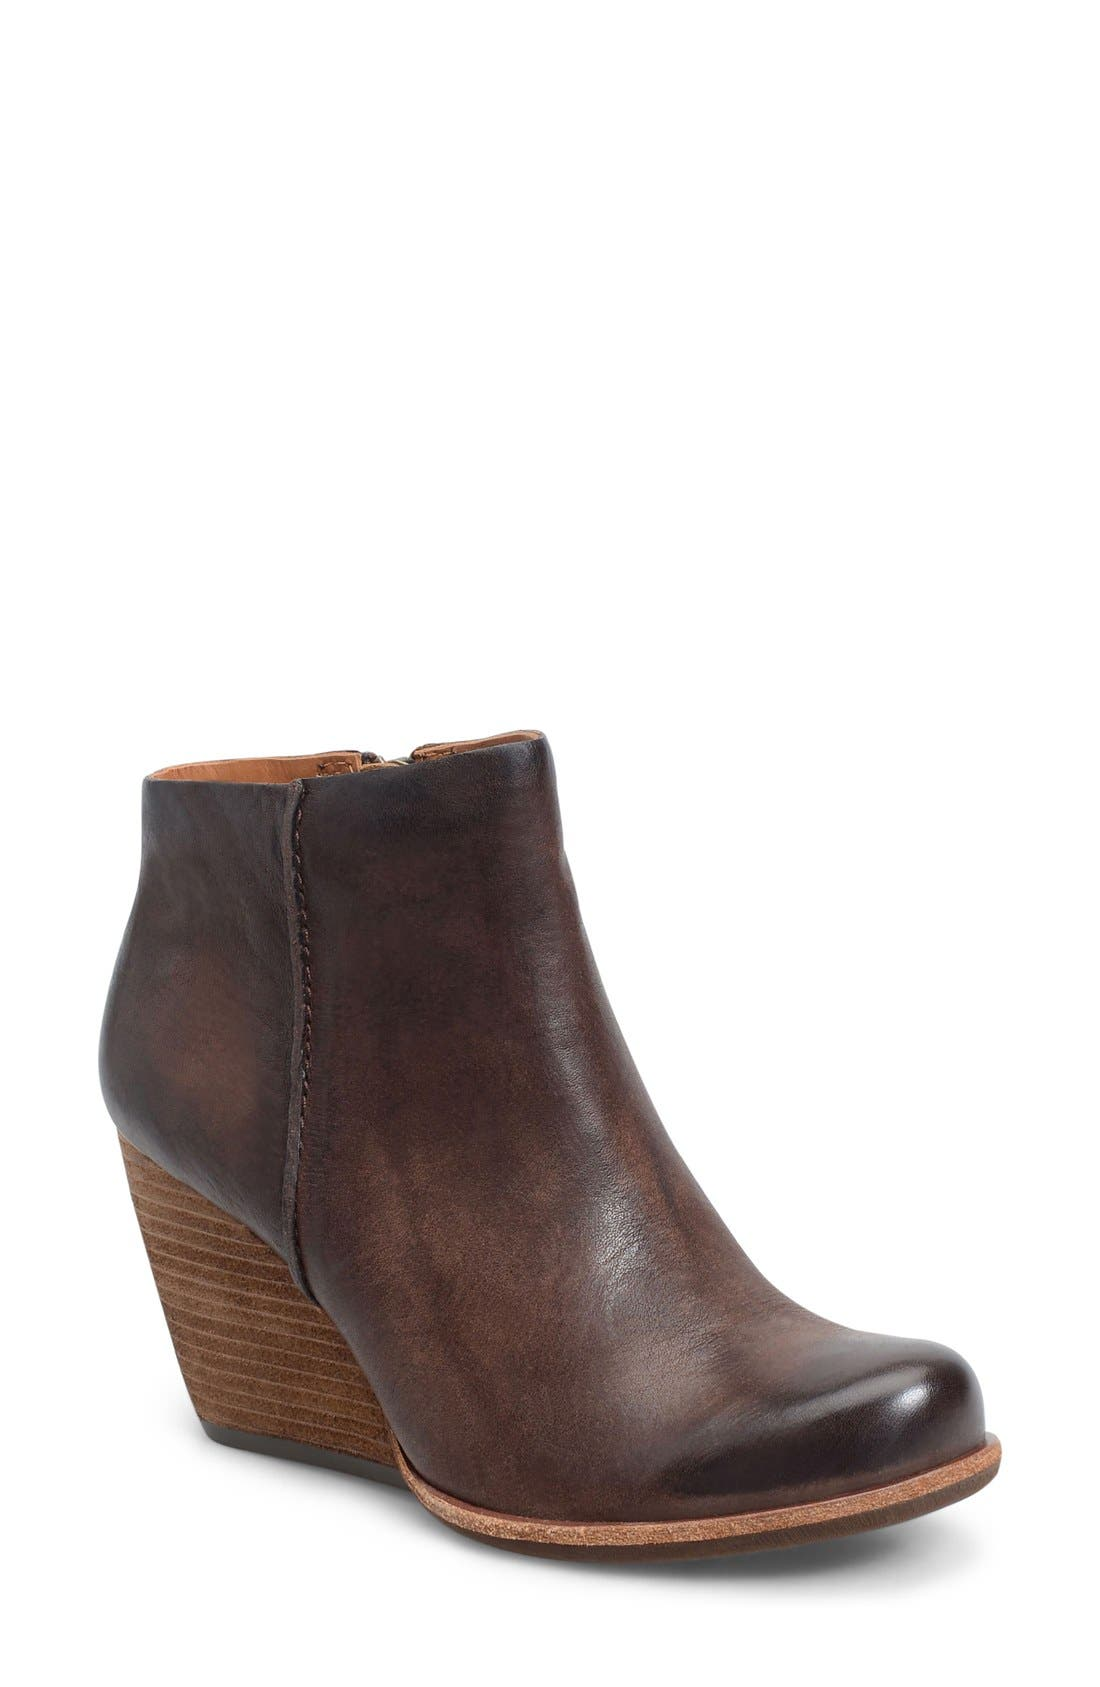 'Natalya' Burnished Leather Demi Wedge Boot,                             Main thumbnail 1, color,                             Dark Brown